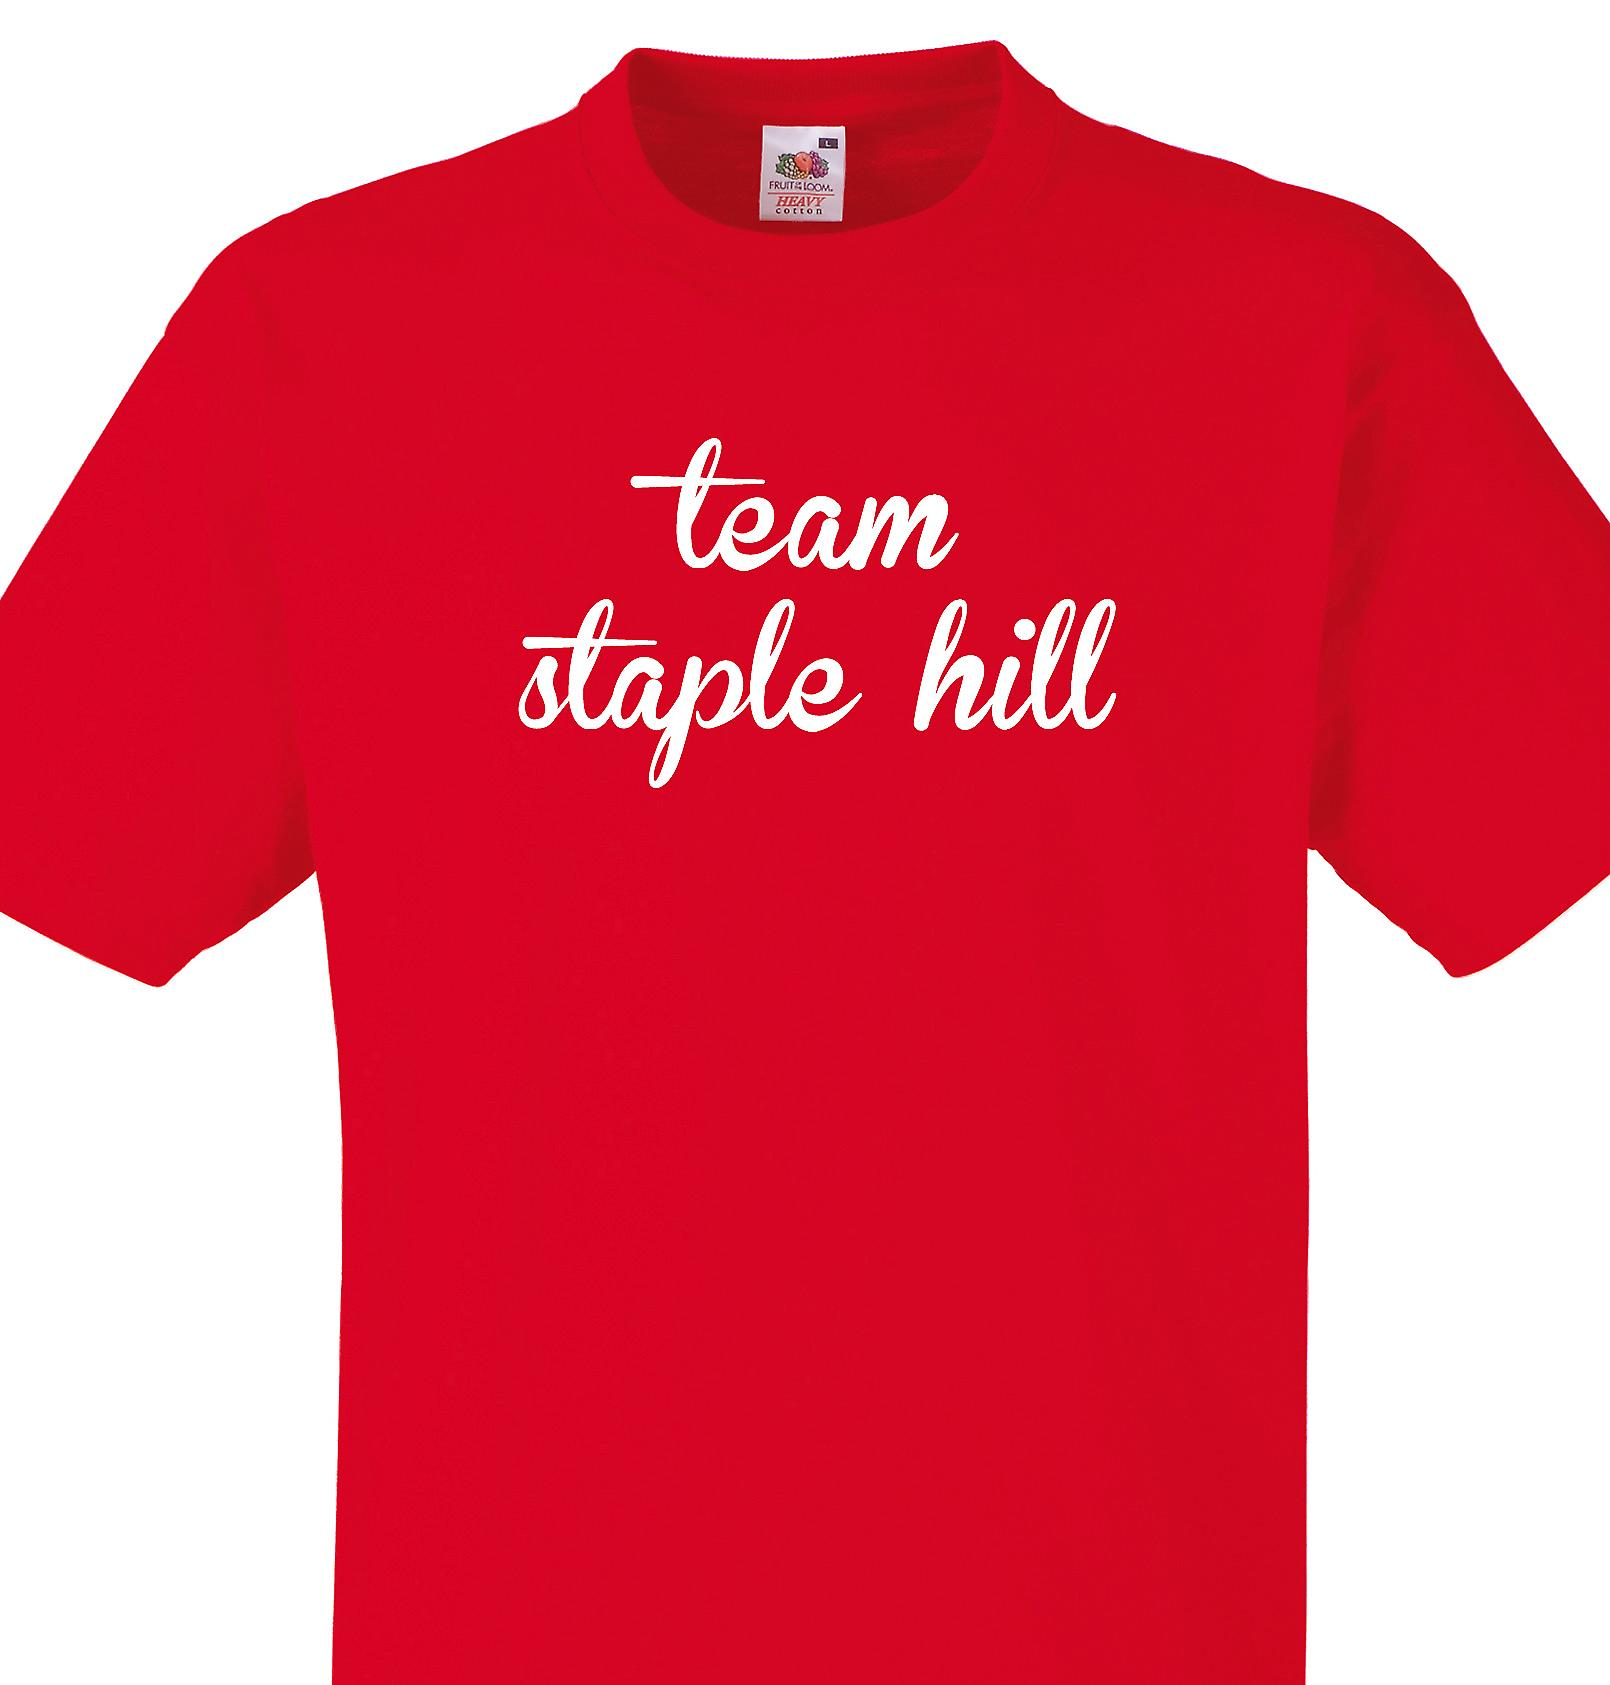 Team Staple hill Red T shirt